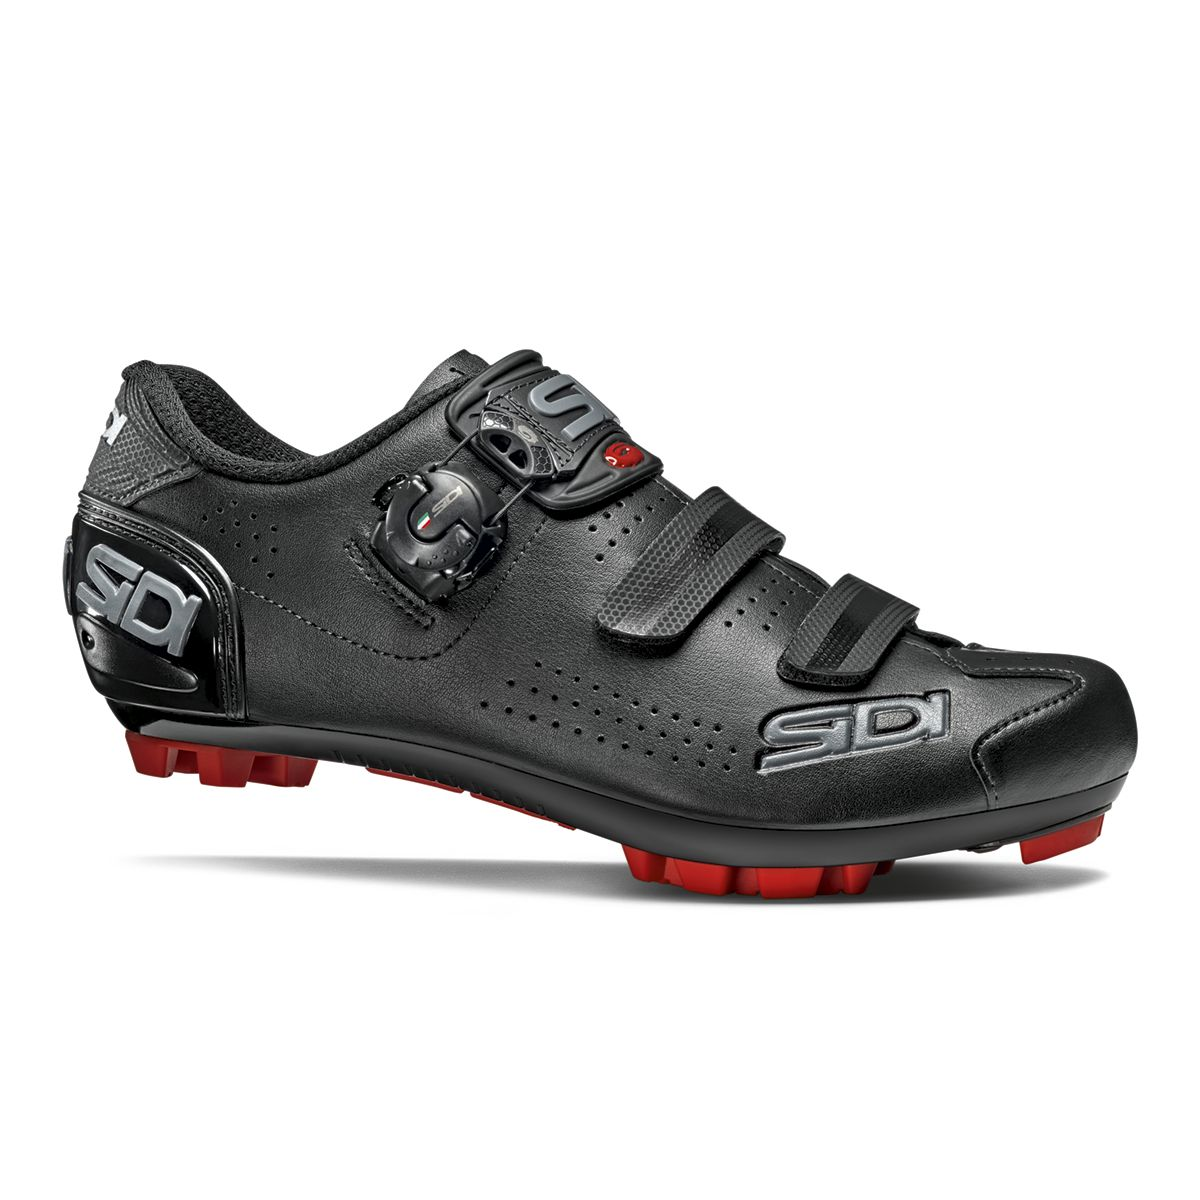 TRACE 2 MTB Shoes